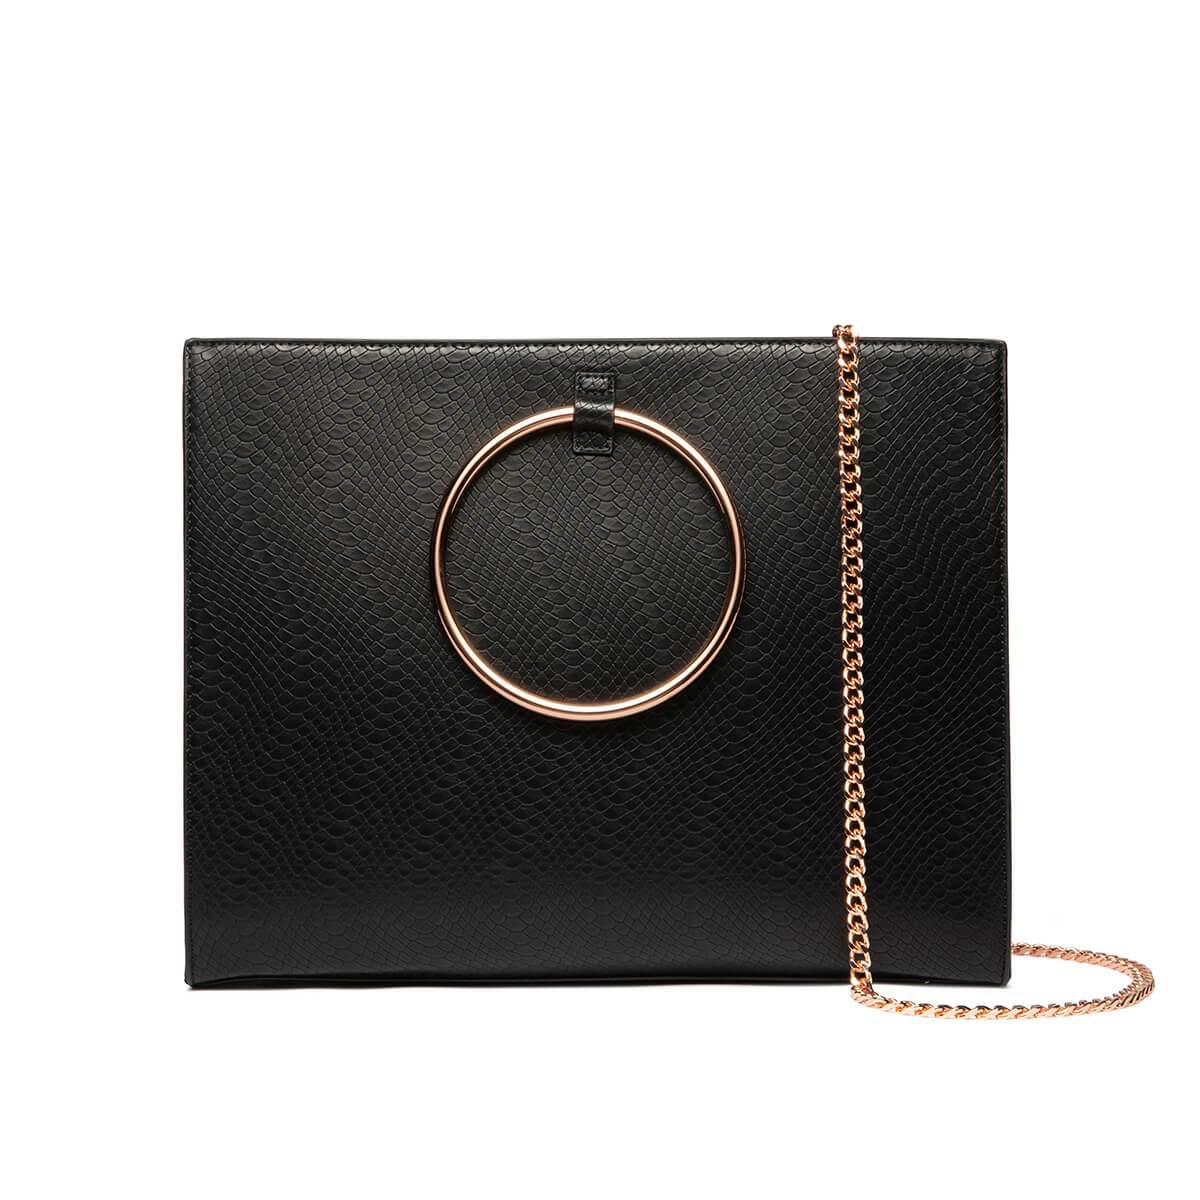 Grand Jet Black Moda Handbag (Rose Gold)